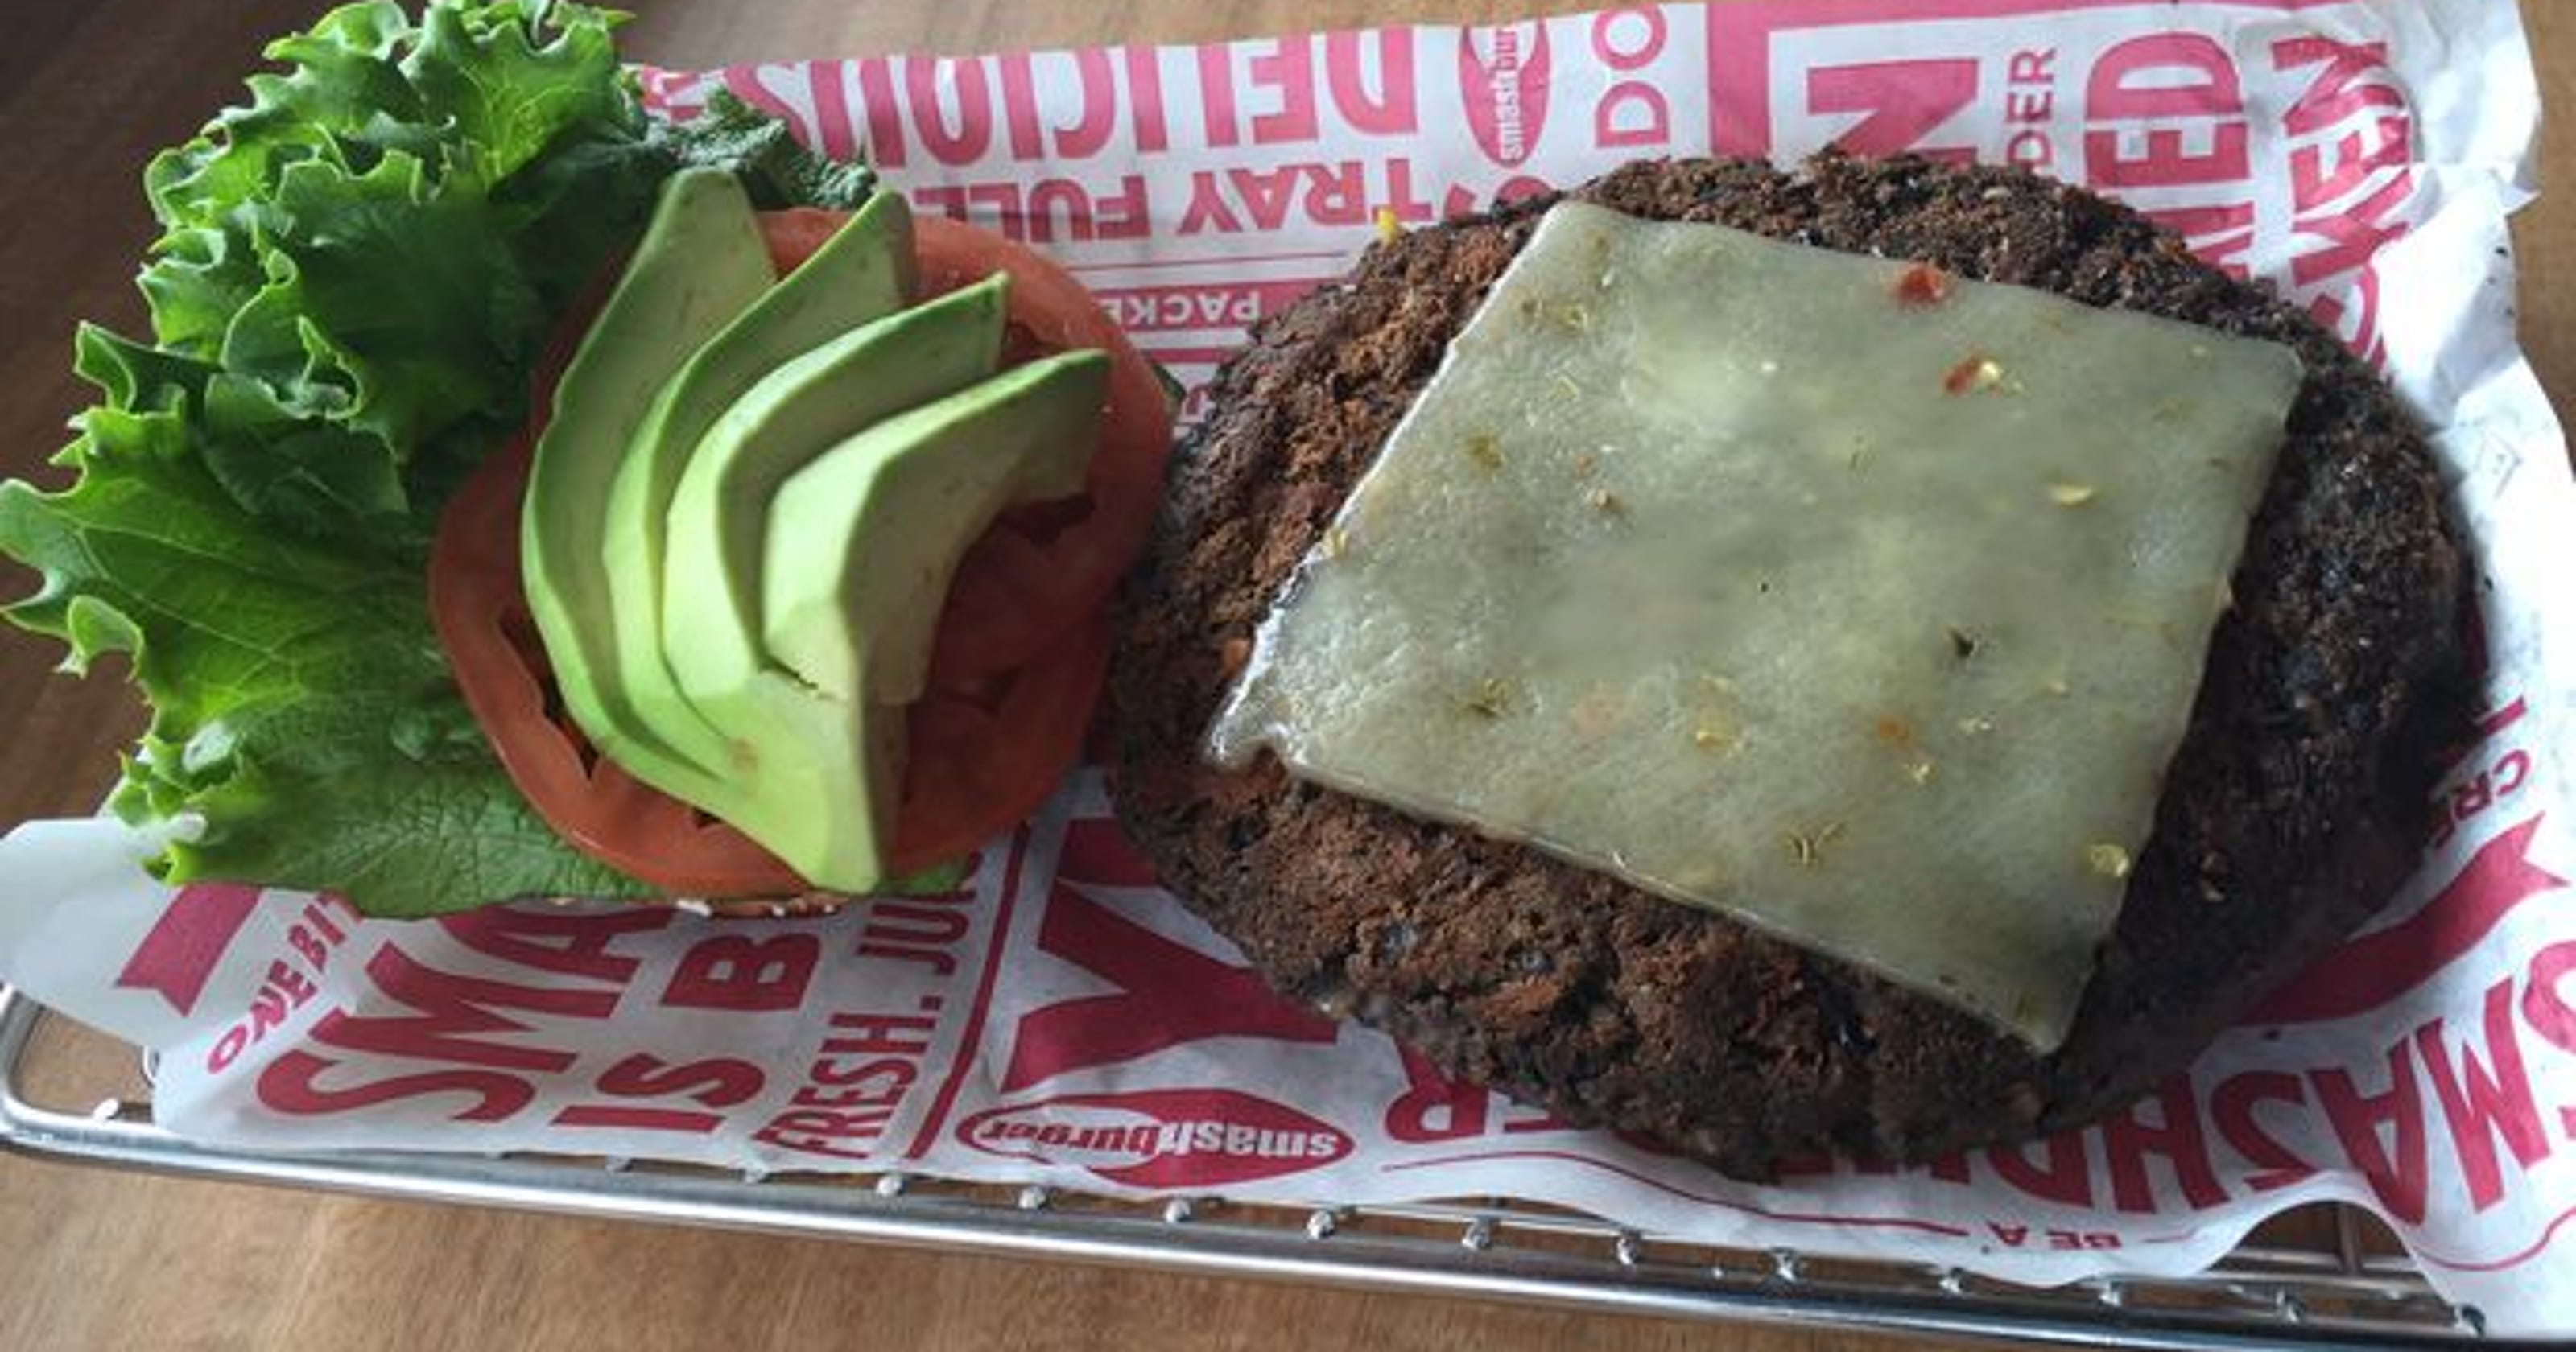 Smashburger features a $2 off coupon regularly, but has been known to occasionally offer buy one get one free and 50 percent off coupons. Download the SmashClub app to receive discounts and earn points towards free food. HOURS & SPECIALS Each Smashburger sets their own hours, but most stores open at 10am and close at 9pm. They are open 7 days a.